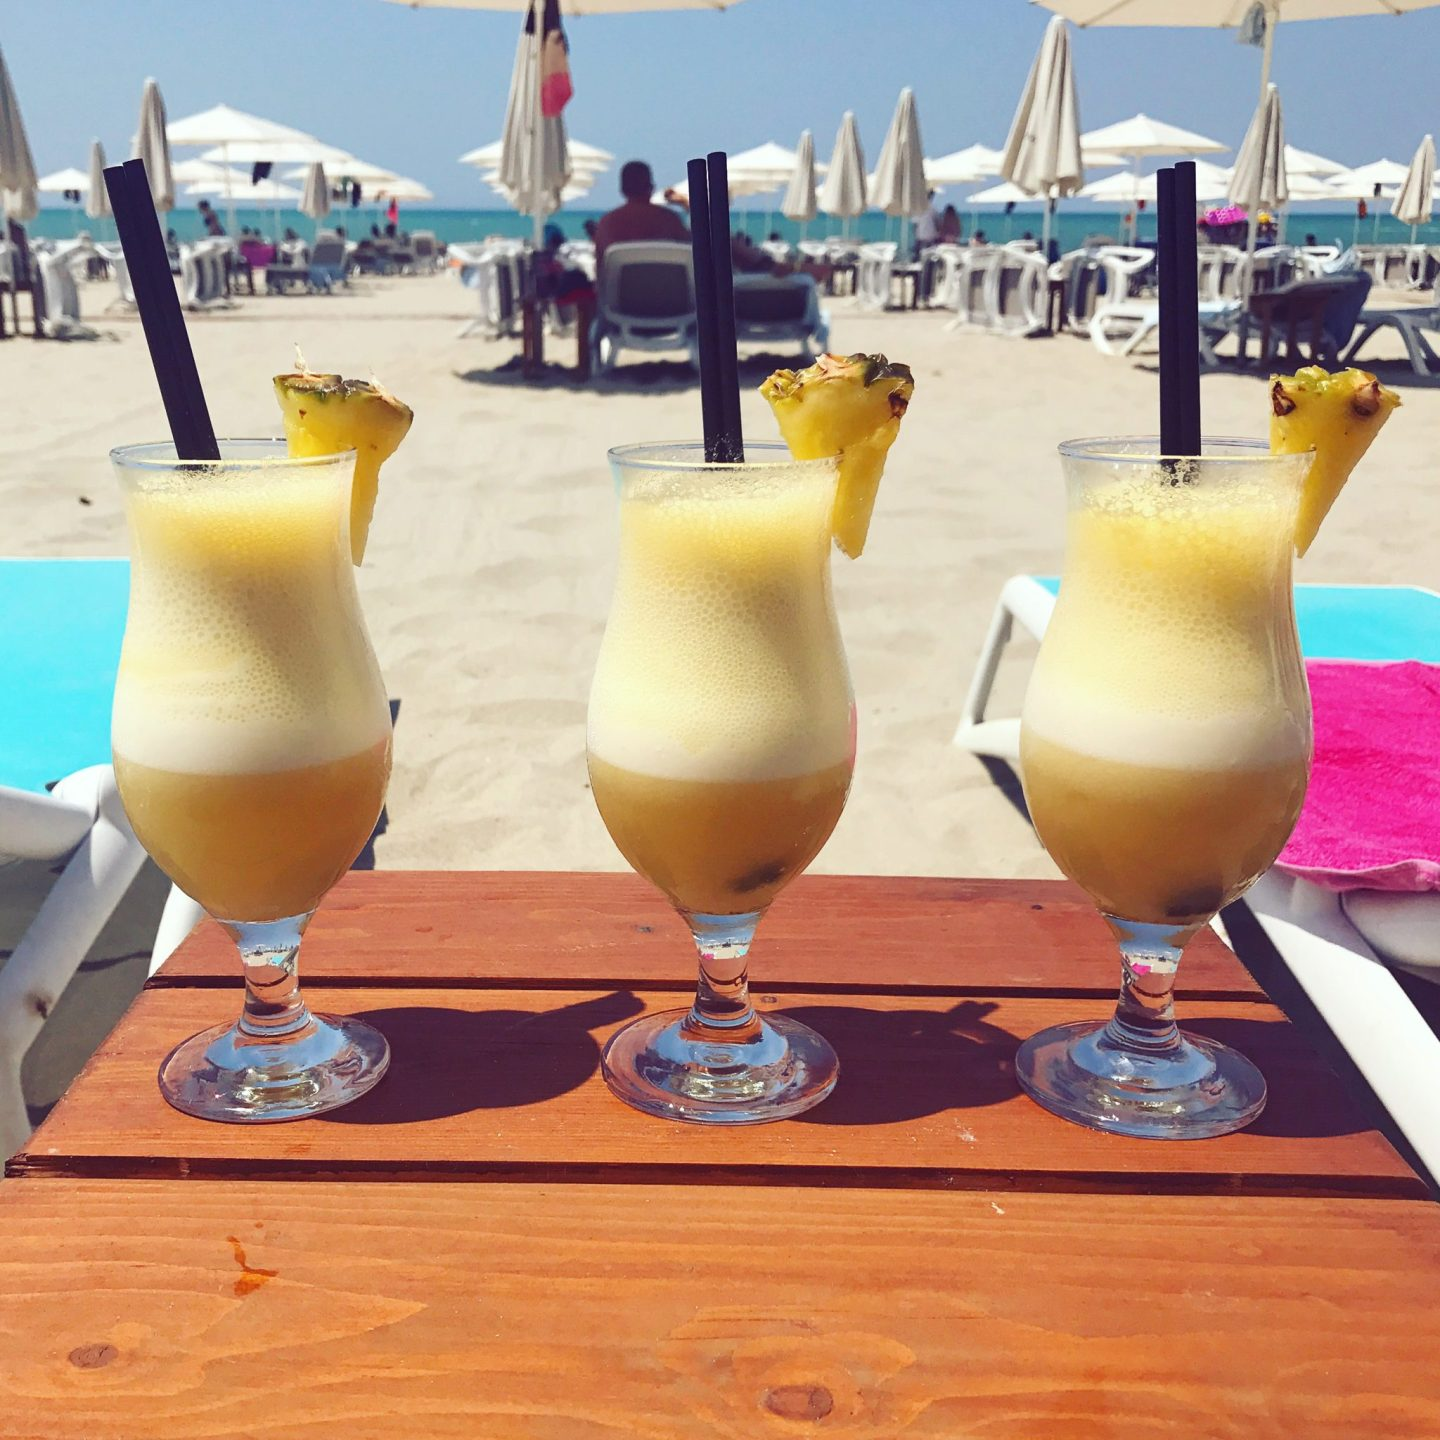 A weekend on the beach in Durres, Albania!